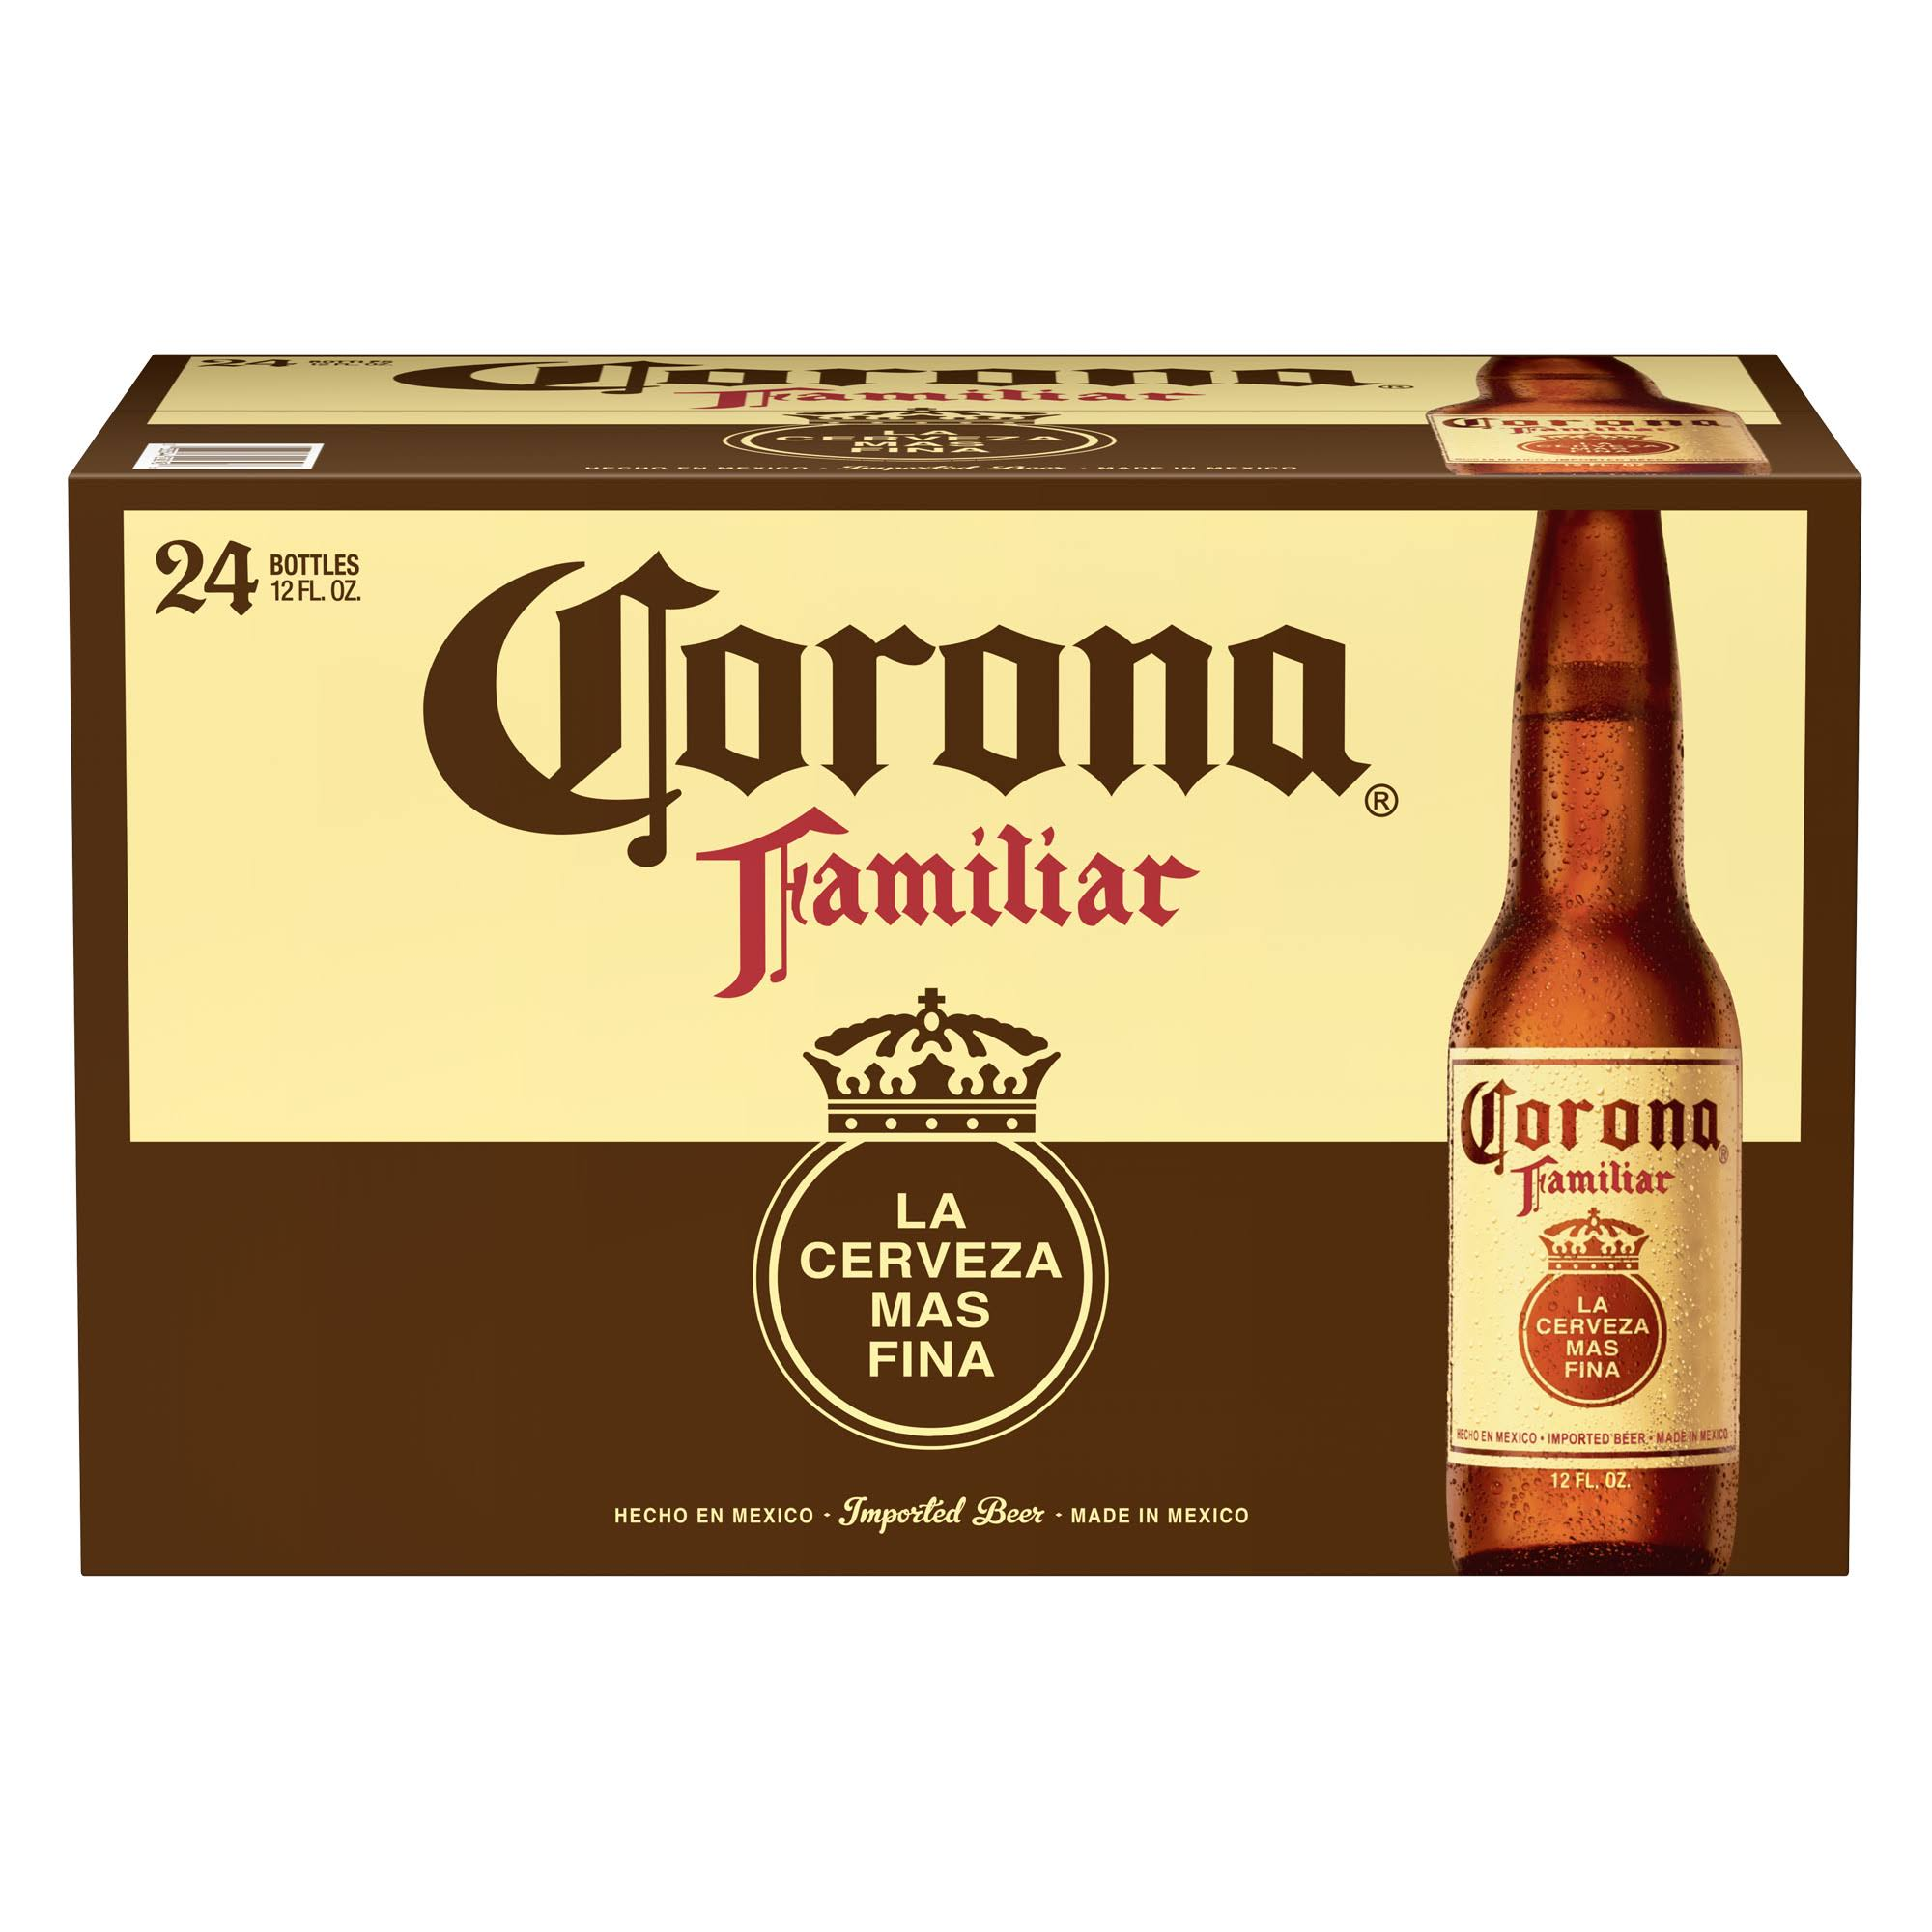 Corona Familiar Mexican Import Beer, 24 Pk 12 fl oz Bottles, 4.8% Abv